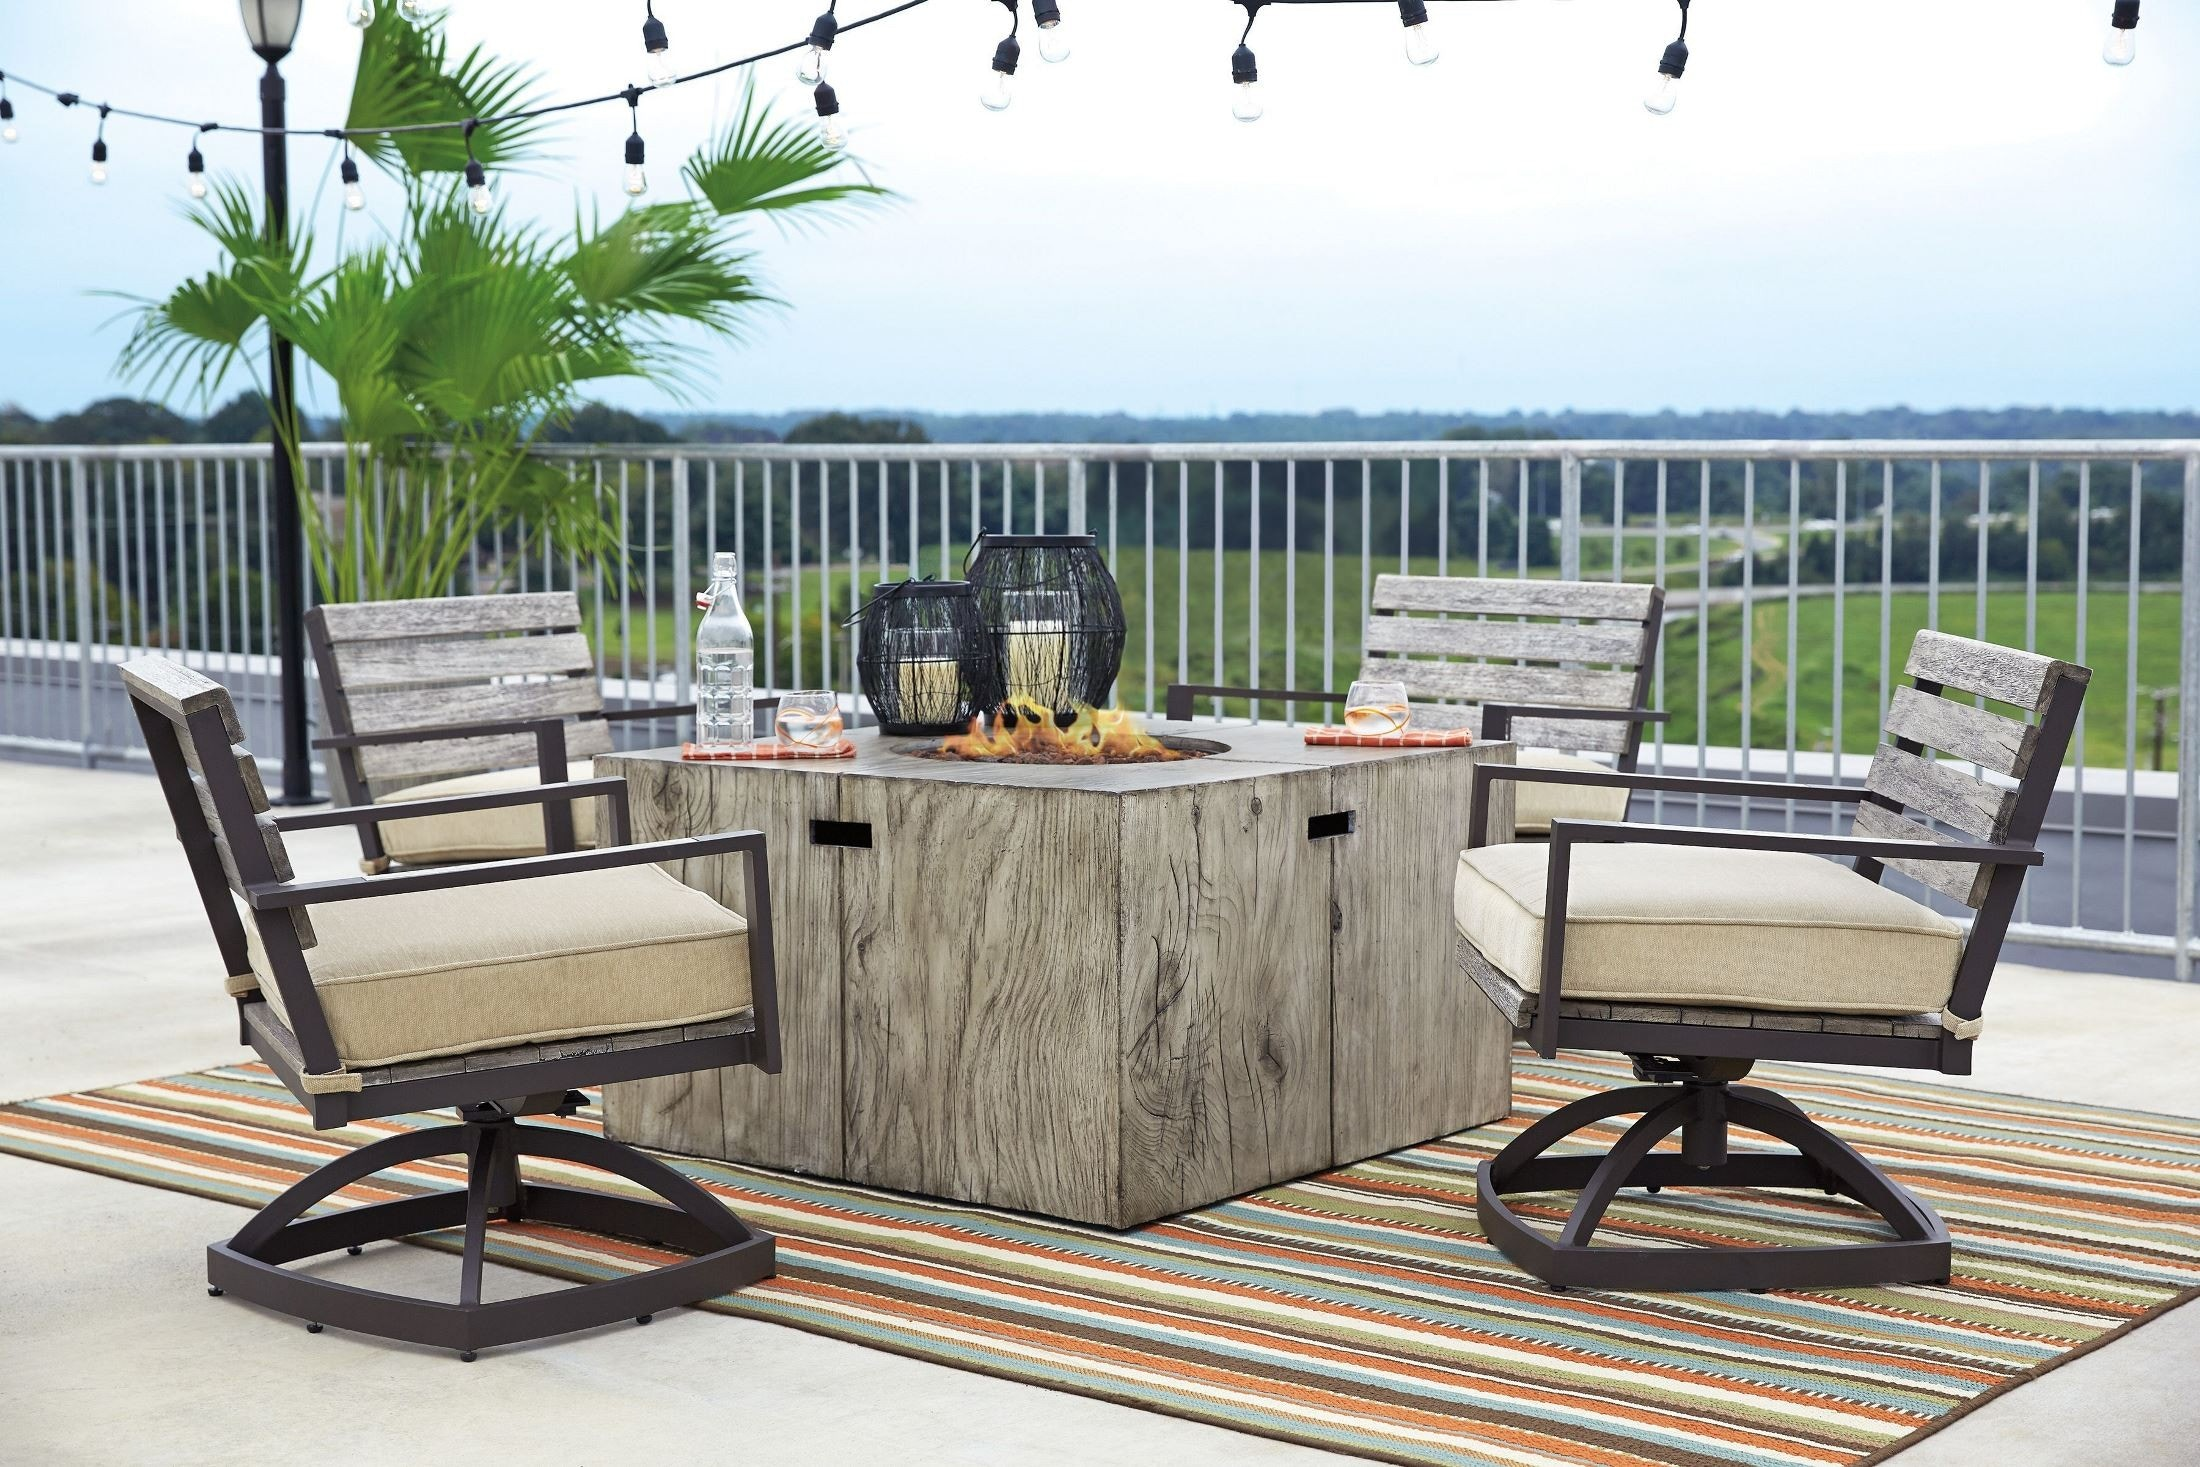 Ashley Peachstone 5 Piece Outdoor Fire Pit Set: 4 Swivel Chairs, Fire Pit